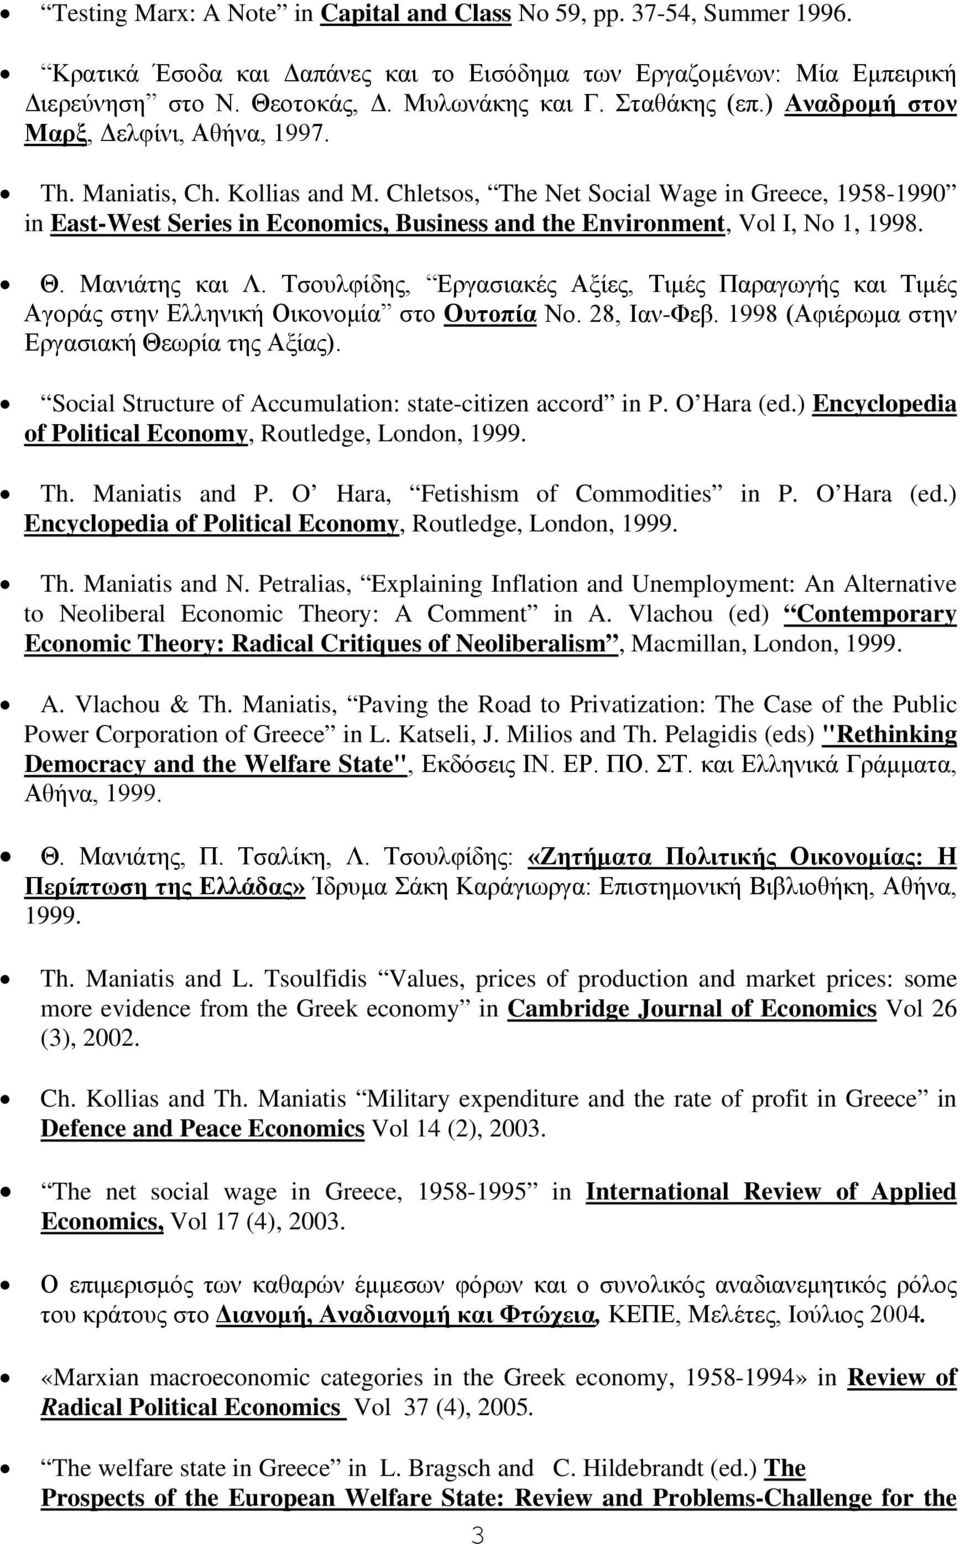 Chletsos, The Net Social Wage in Greece, 1958-1990 in East-West Series in Economics, Business and the Environment, Vol I, No 1, 1998. Θ. Μανιάτης και Λ.